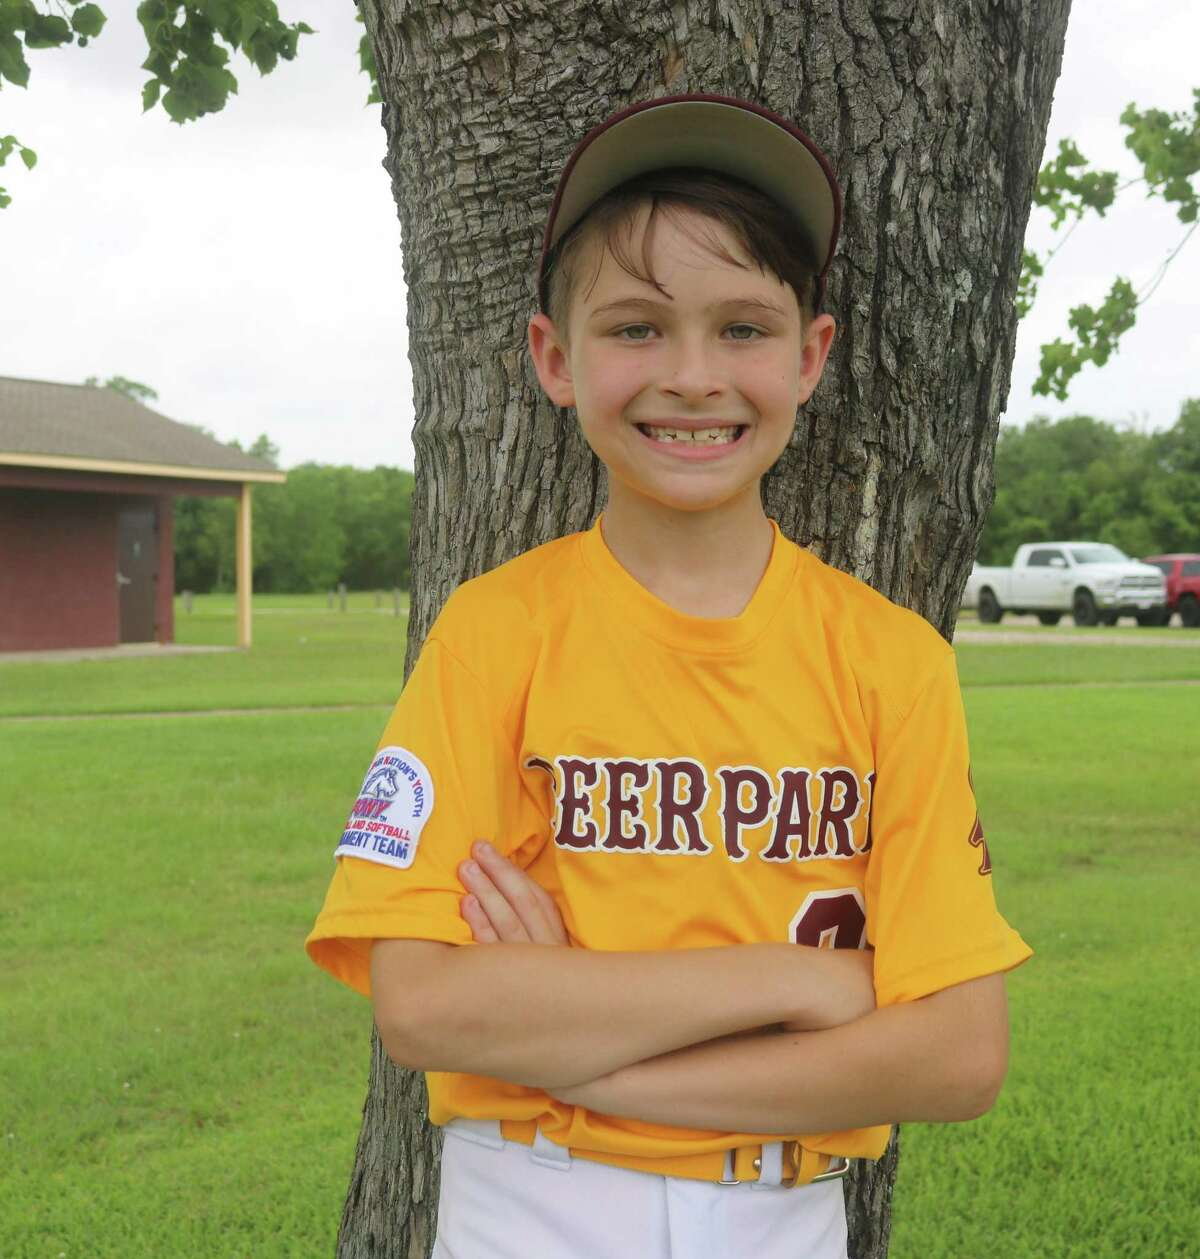 Deer Park Mustang 11-year-old All-Star Brett Hutto